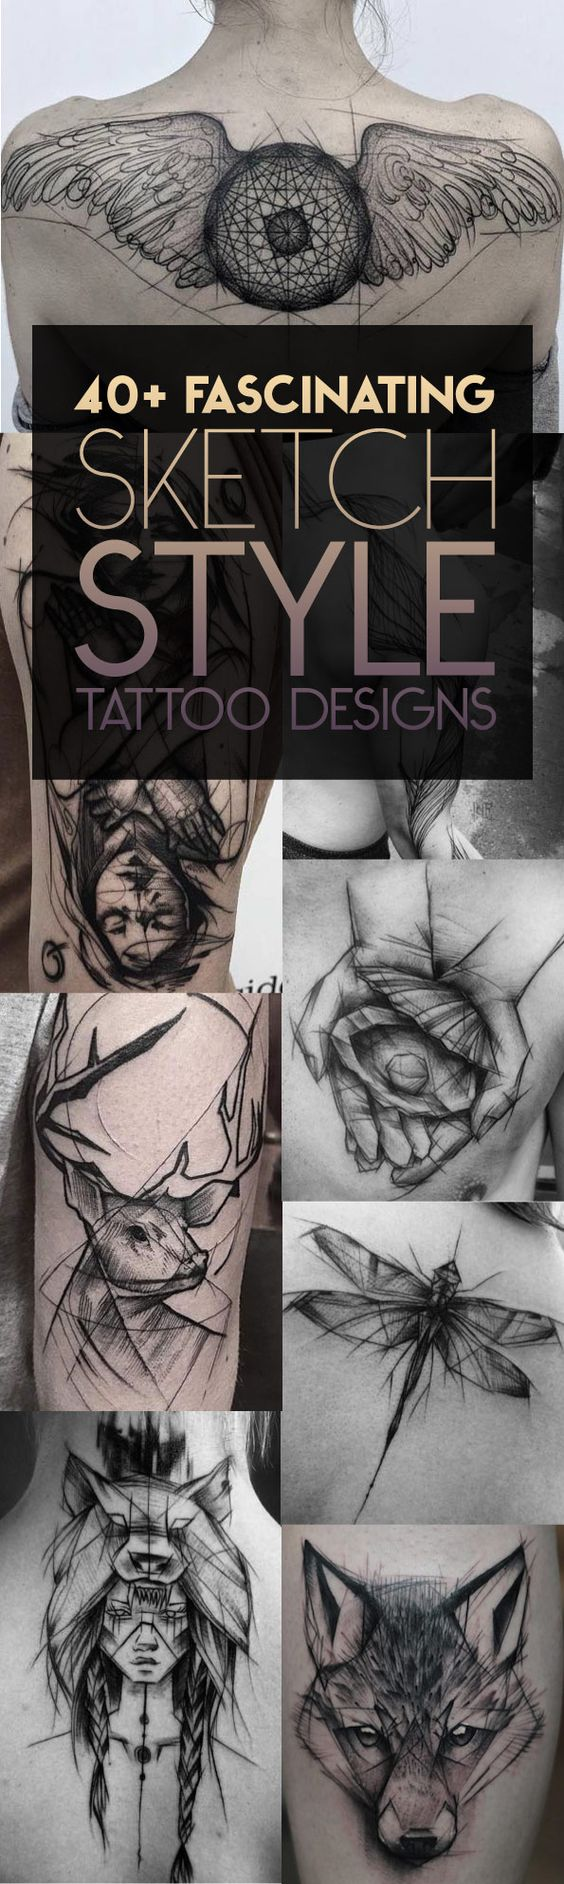 40 Fascinating Sketch Style Tattoos   TattooBlend